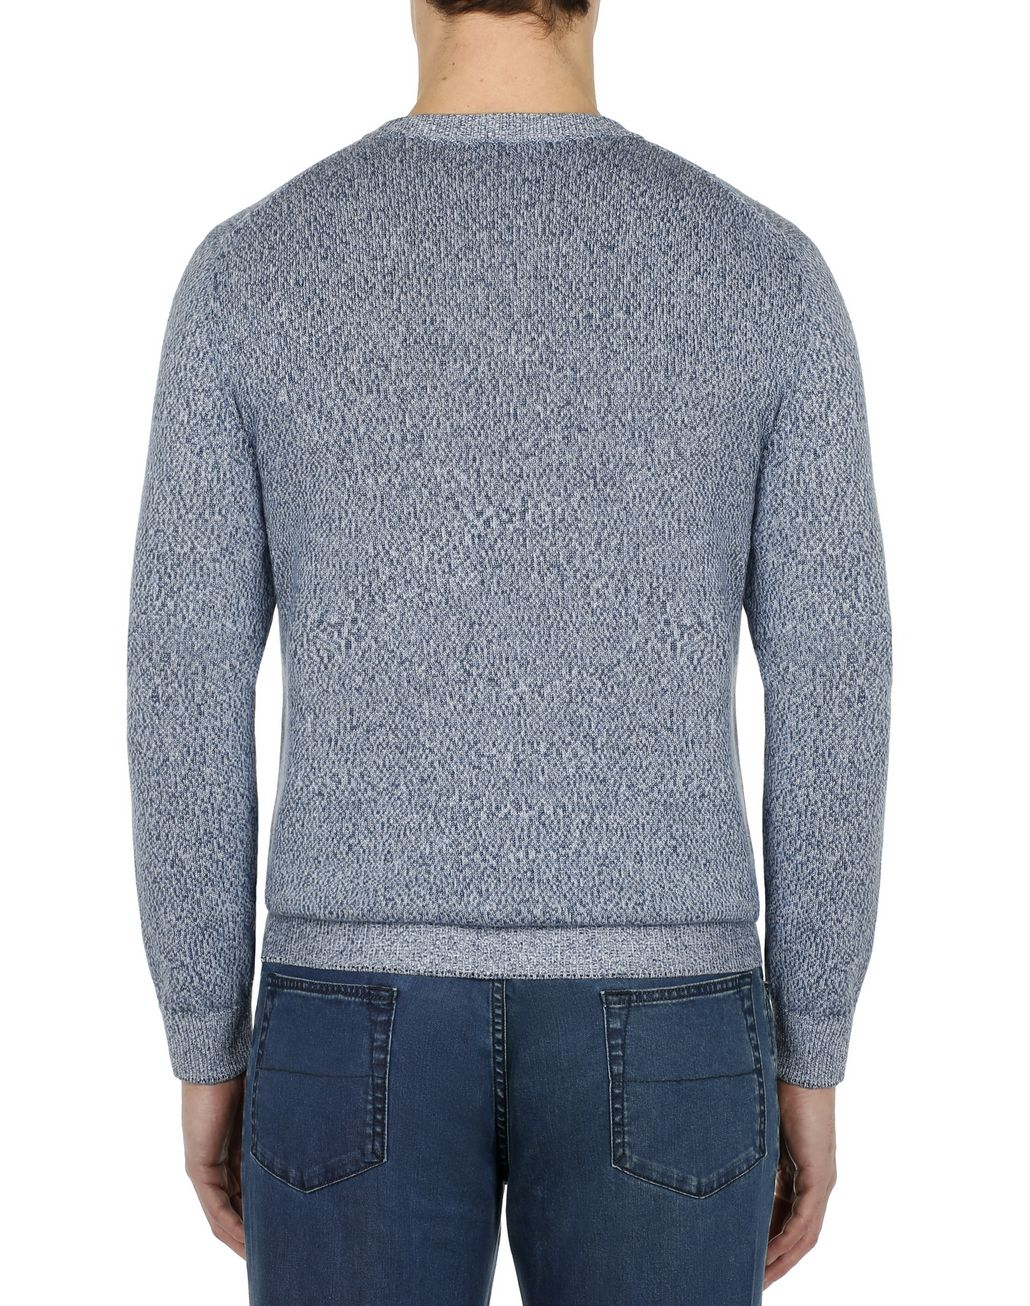 BRIONI Light Blue Mouline Anchor Sweater Knitwear Man d